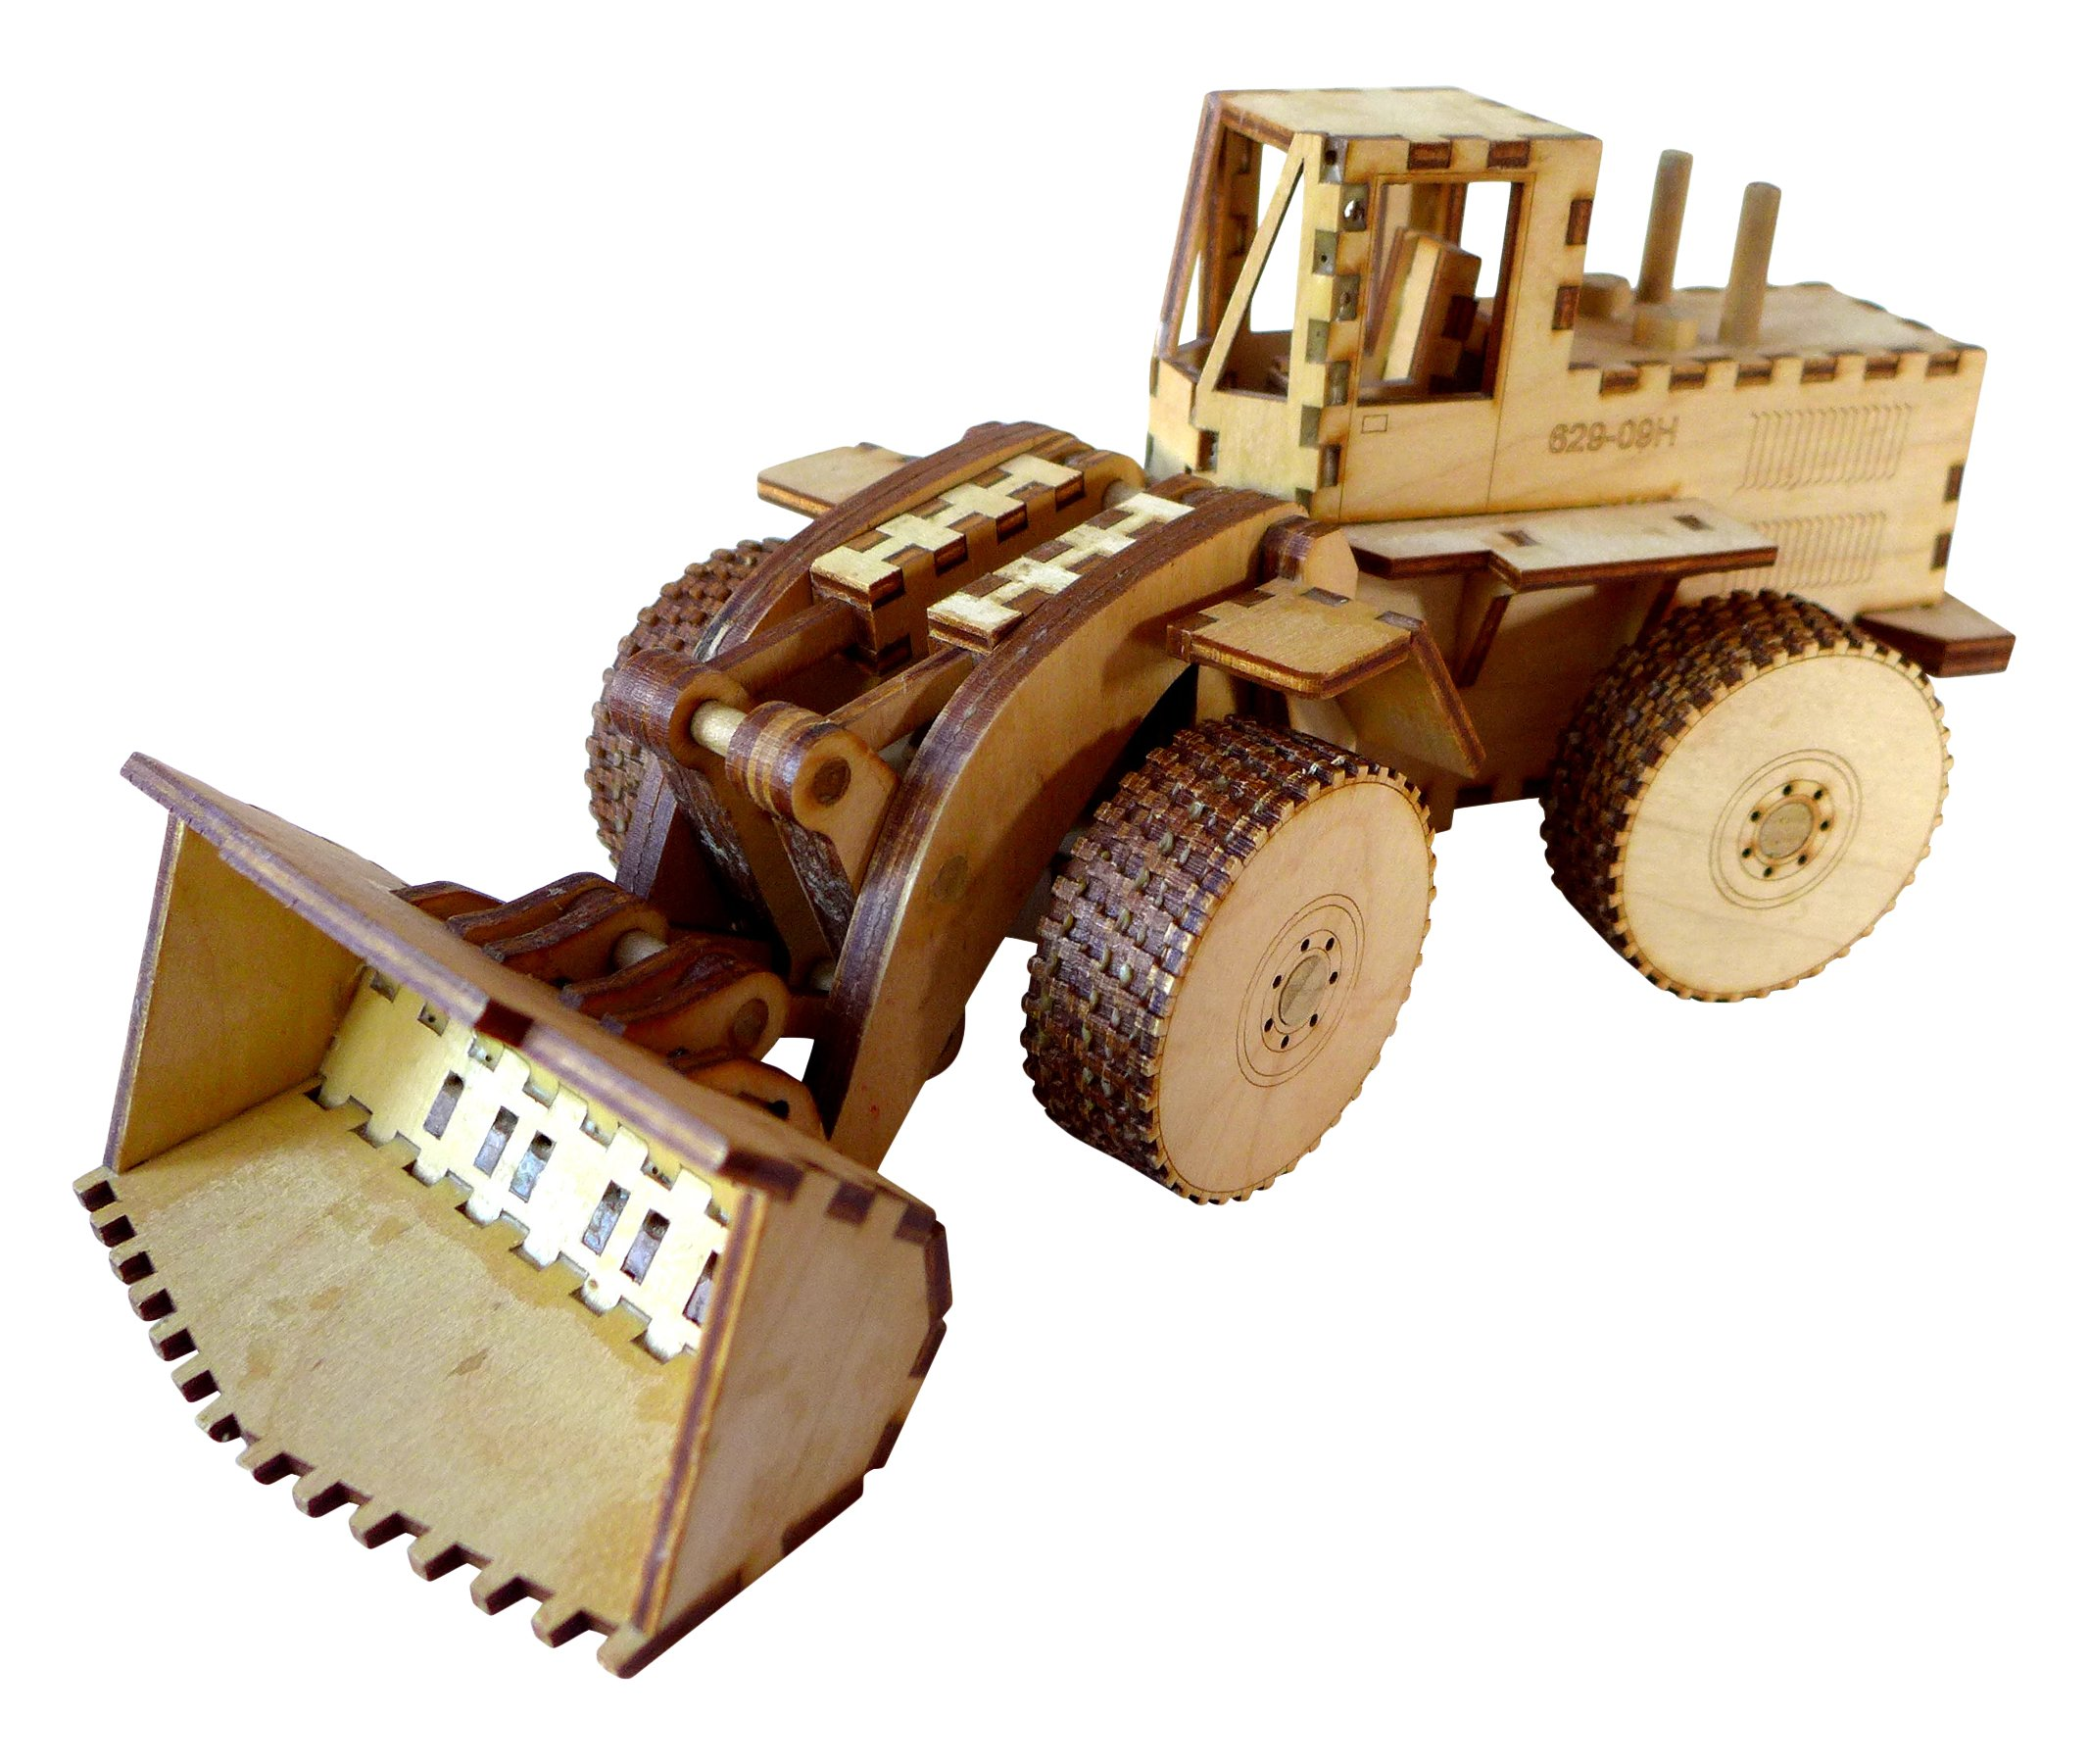 Heartwood Toys Laser Cut Wood Front End Loader Toy Kit, DIY, Build it Yourself